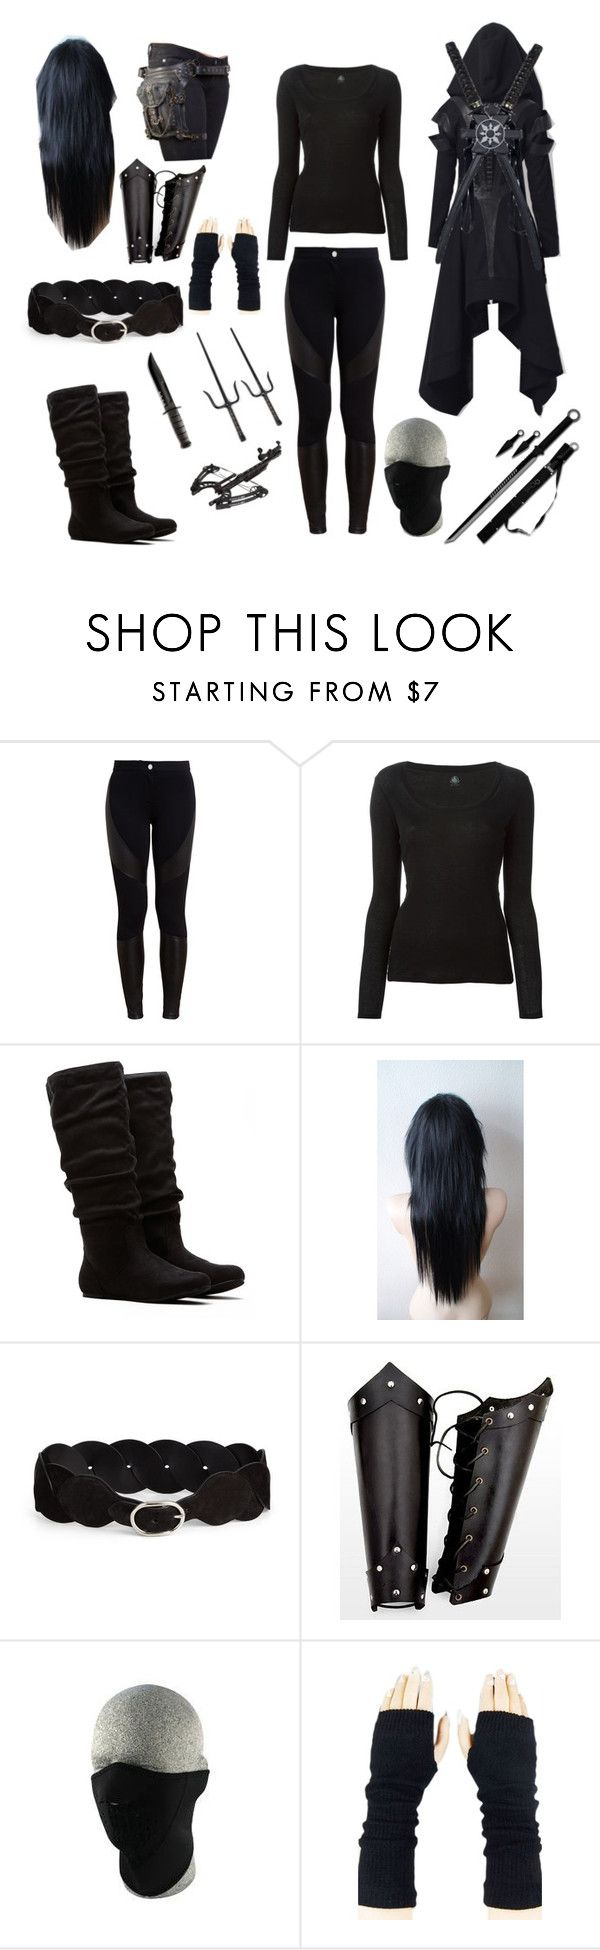 """""""Assassin"""" by thenightshadowess ❤ liked on Polyvore featuring Givenchy, Petit Bateau and Emilio Pucci"""